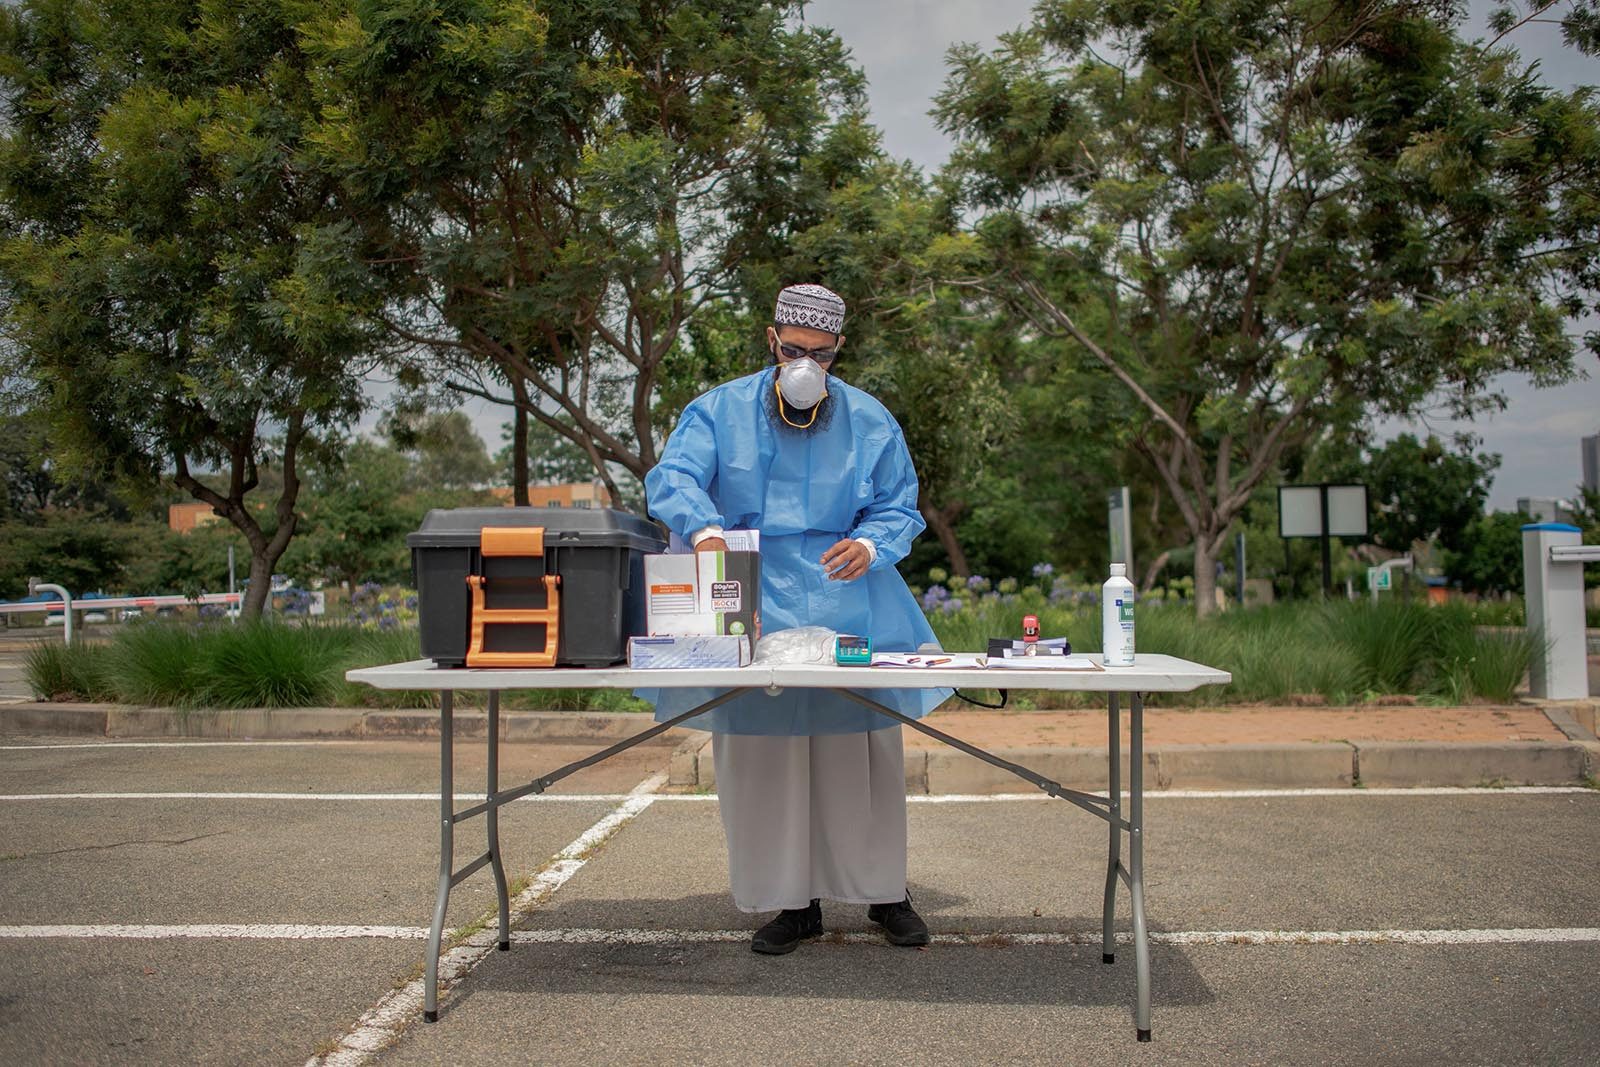 A lab technician prepares equipment to perform Covid-19 swab tests at a drive-through testing center at Wits University, Johannesburg, on January 5.